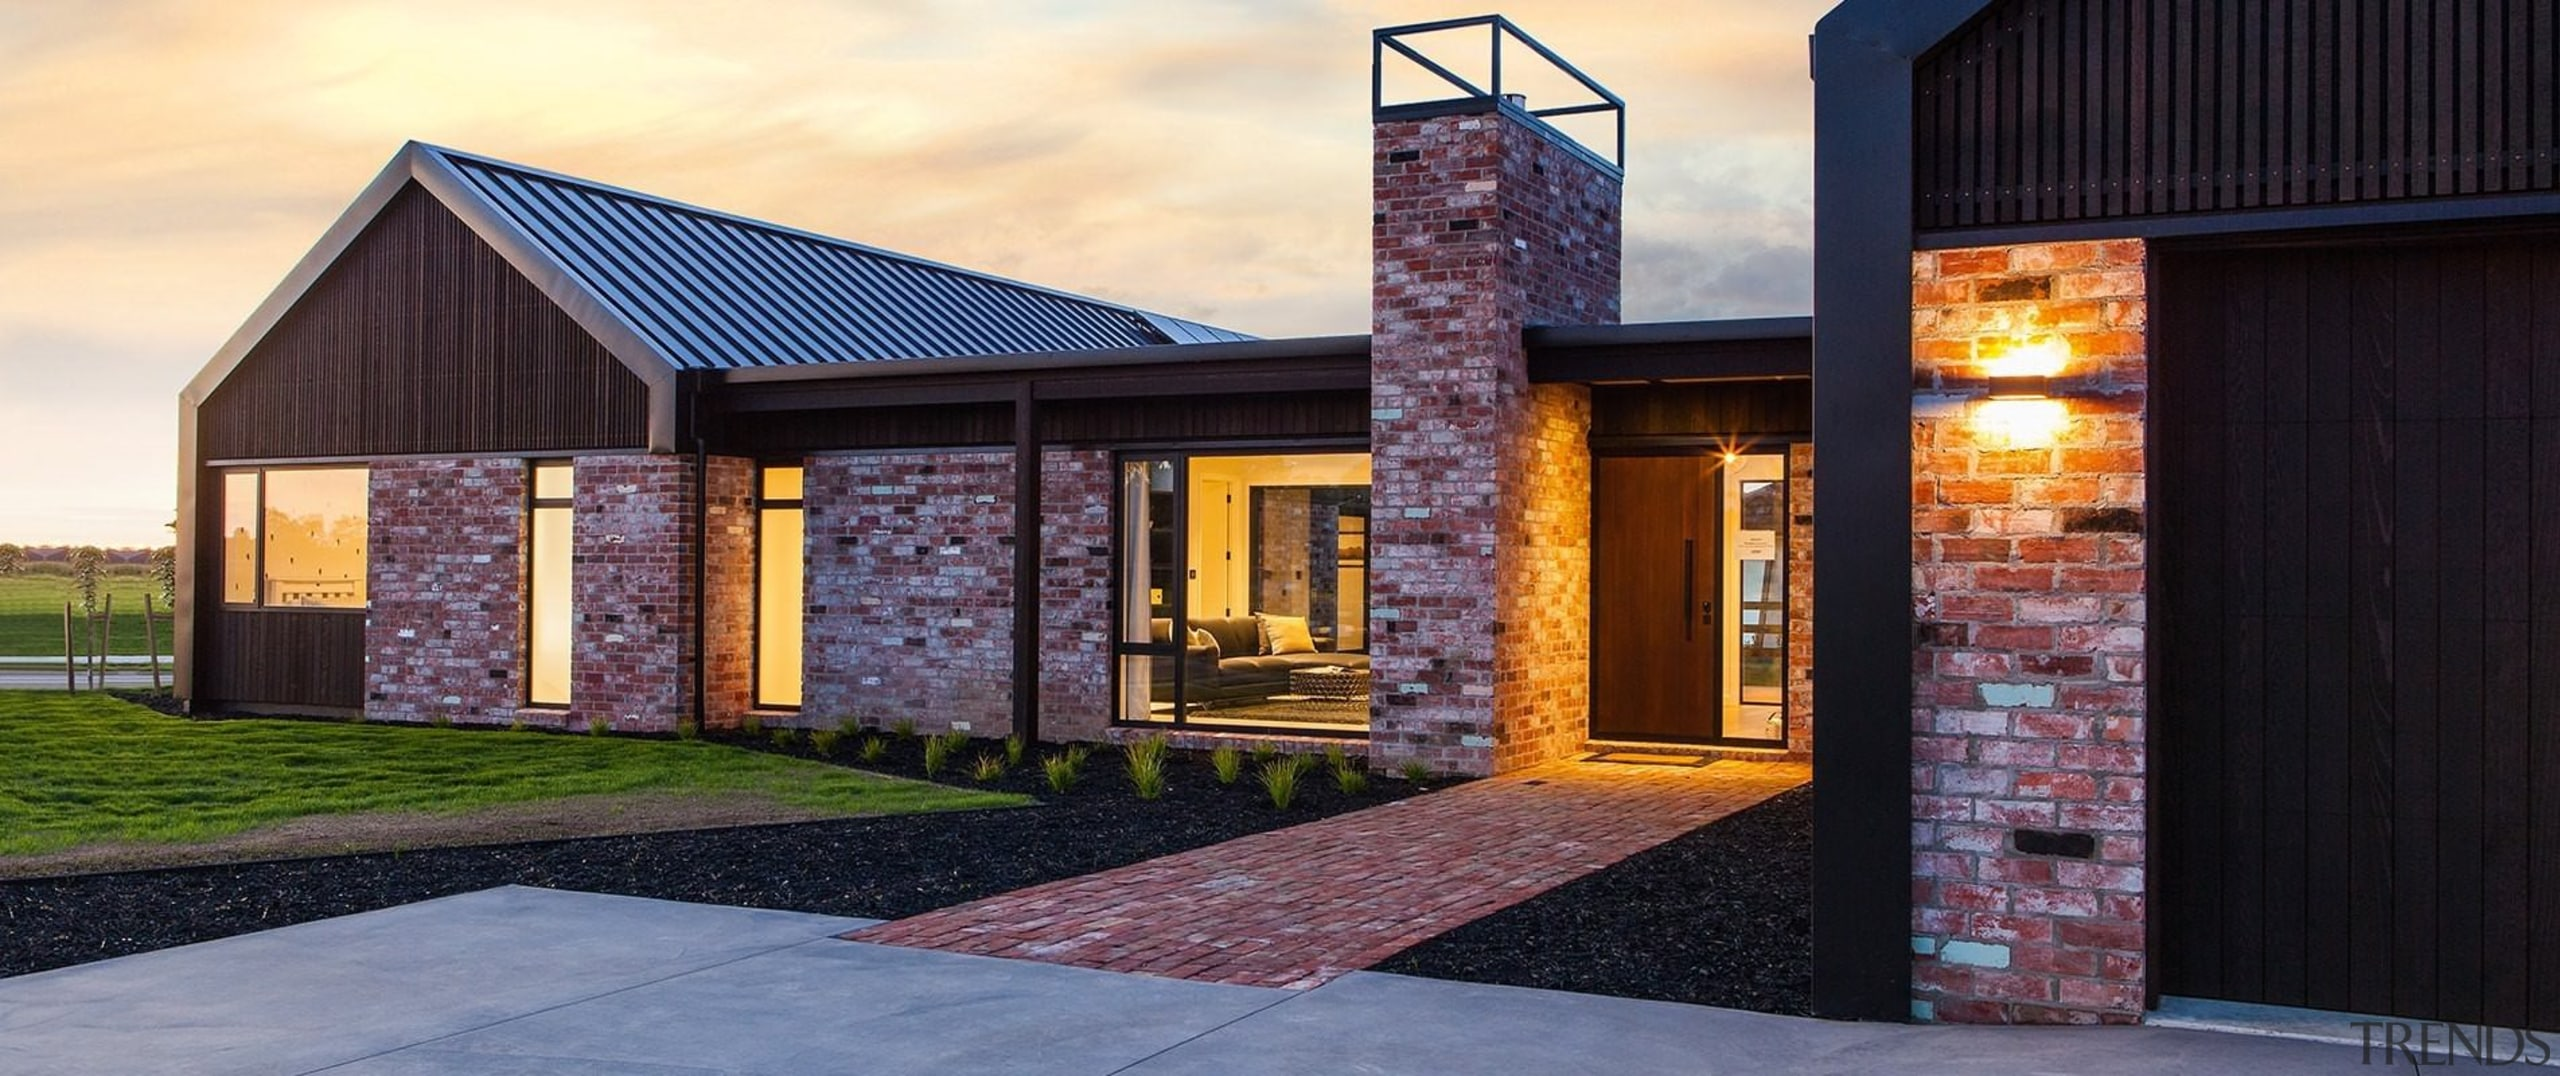 2017 House of the Year Entrants - 2017 architecture, facade, home, house, property, real estate, shed, siding, window, black